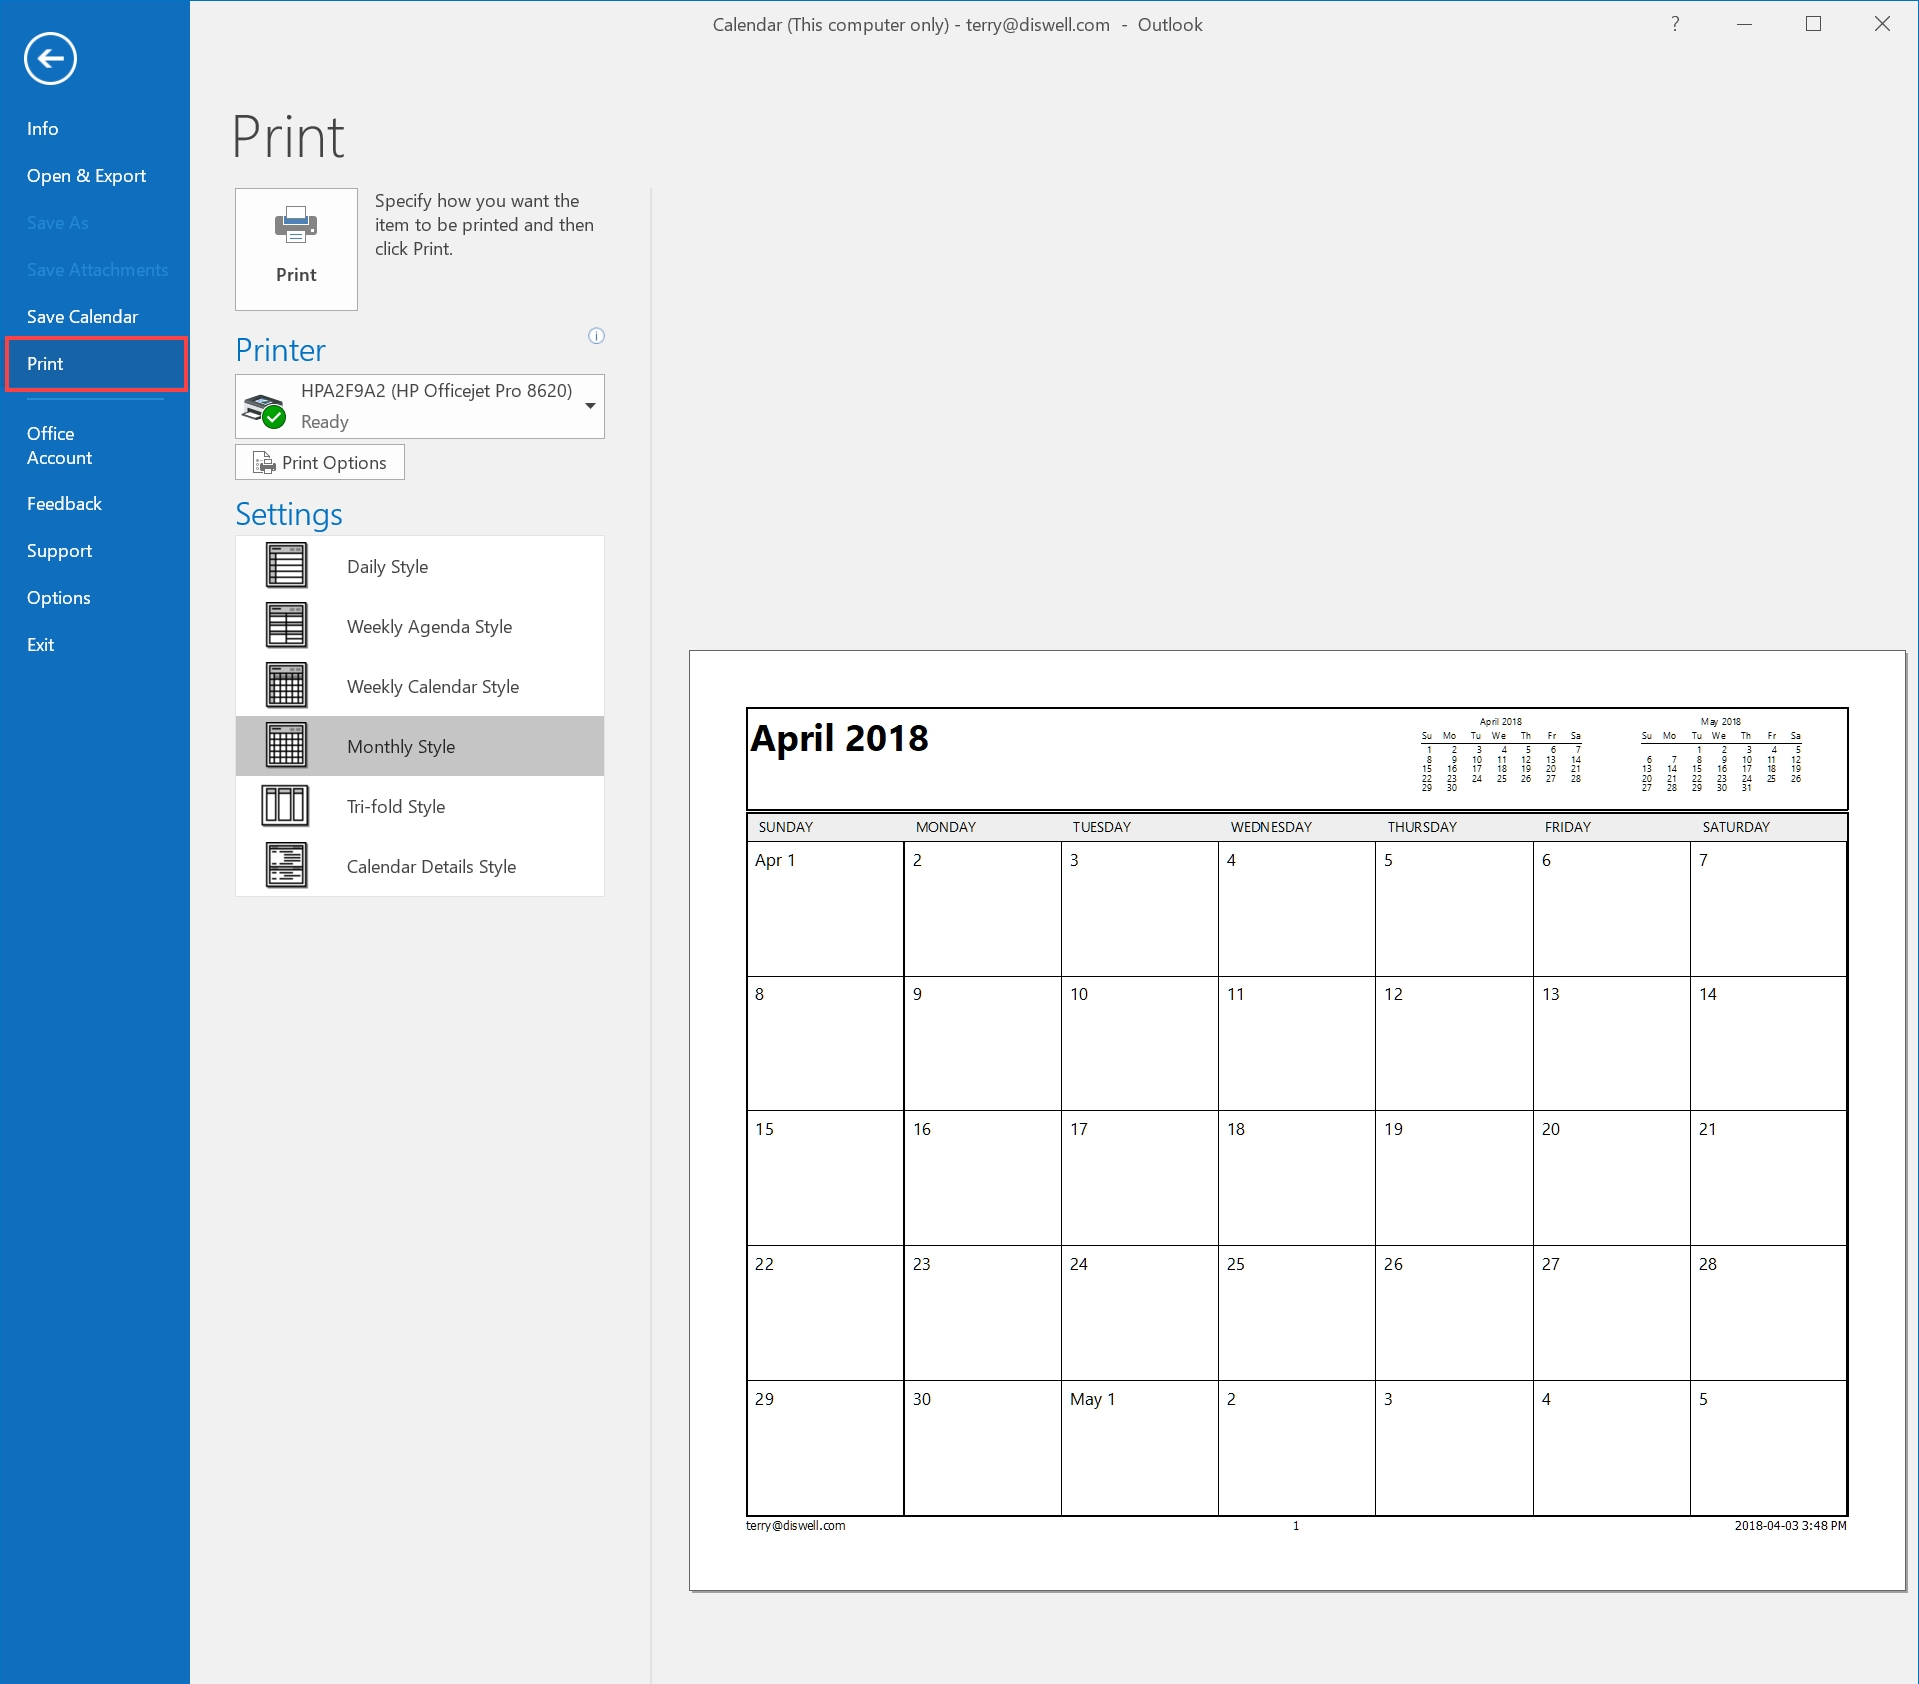 How To Email Or Print Your Calendar In Outlook 2016 - Hostpapa Printing Calendar From Office 365